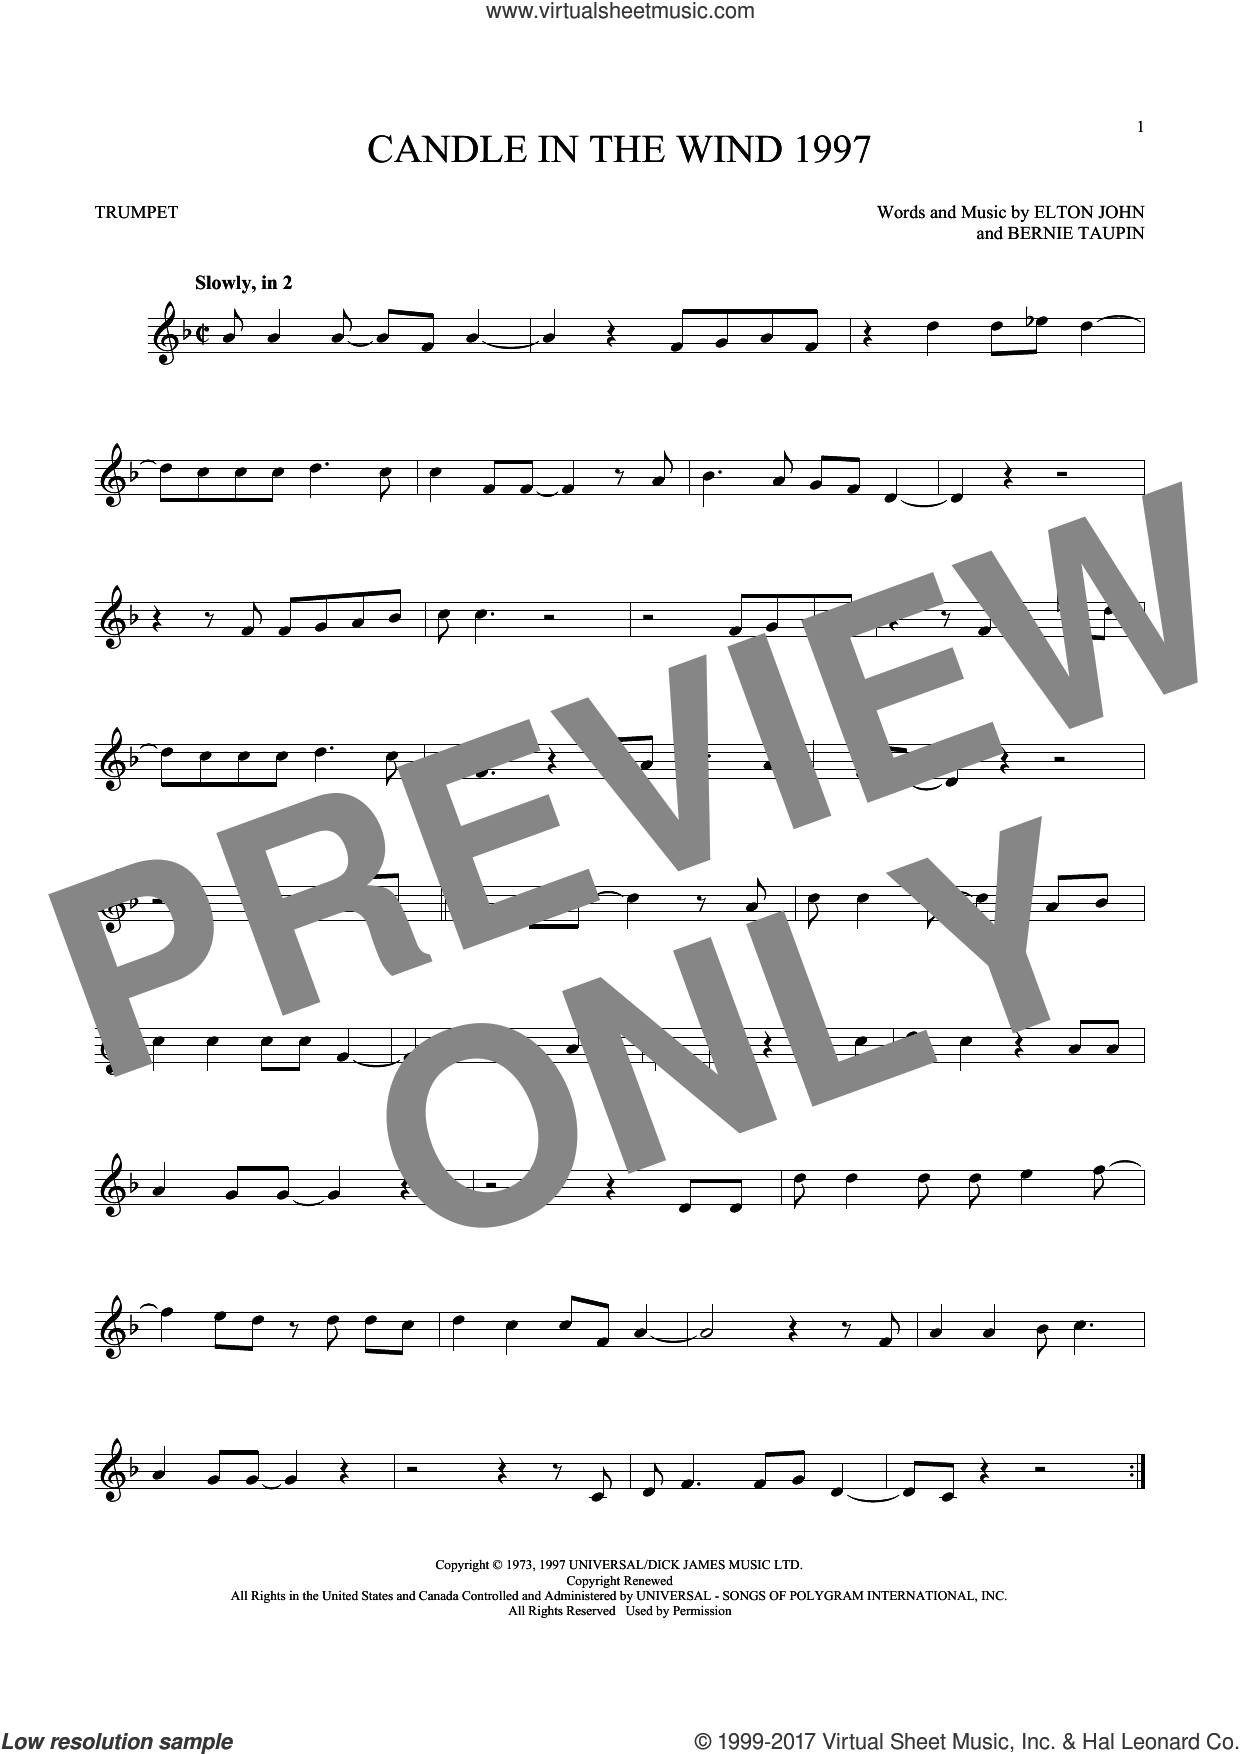 Candle In The Wind 1997 sheet music for trumpet solo by Elton John and Bernie Taupin, intermediate skill level